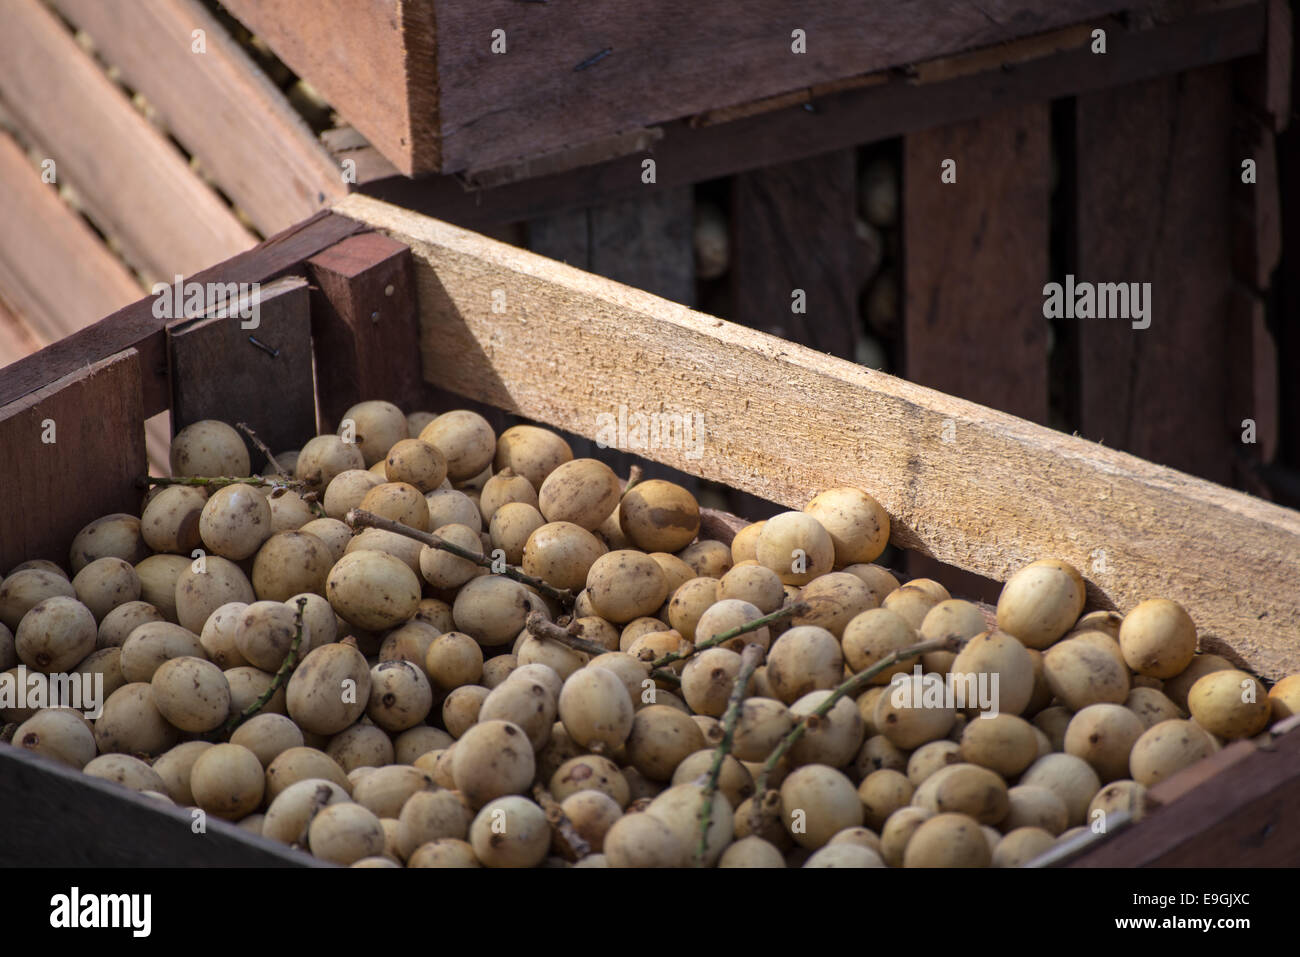 Bunch of longan tropical fruit stocked in wooden crates in indonesian market. Selective focus. - Stock Image